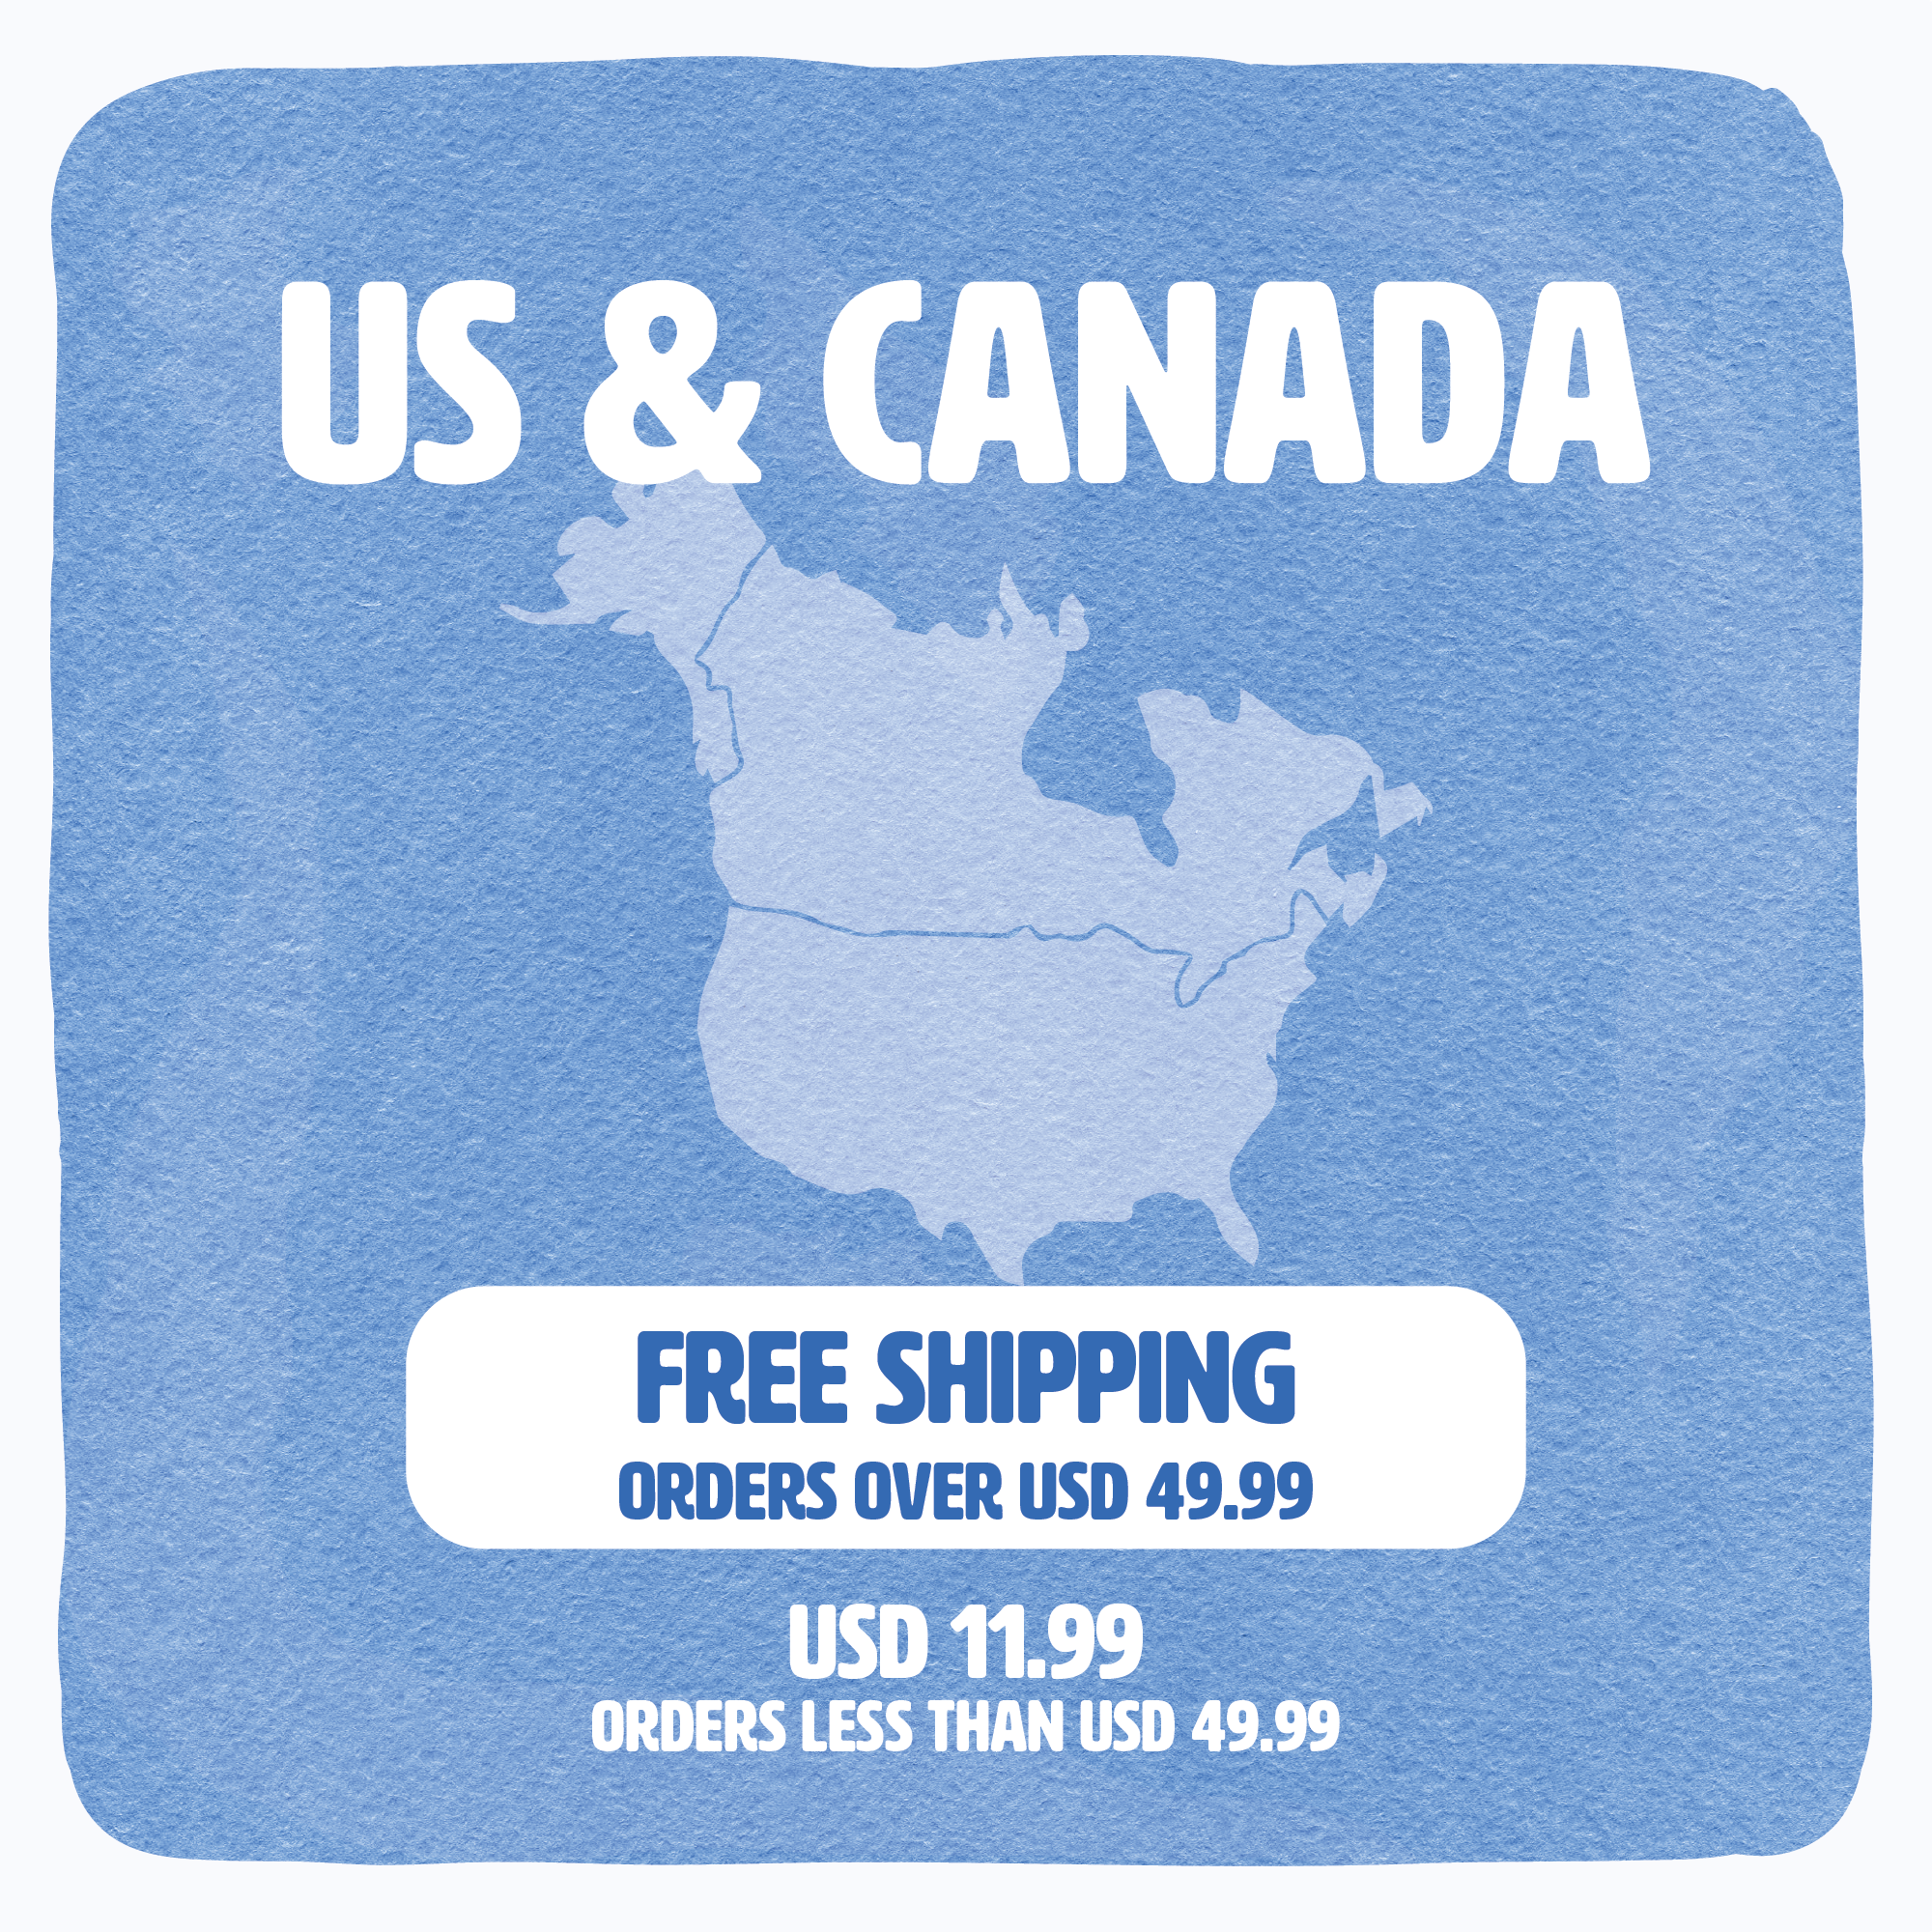 Shipping availability & conditions banner for US & Canda